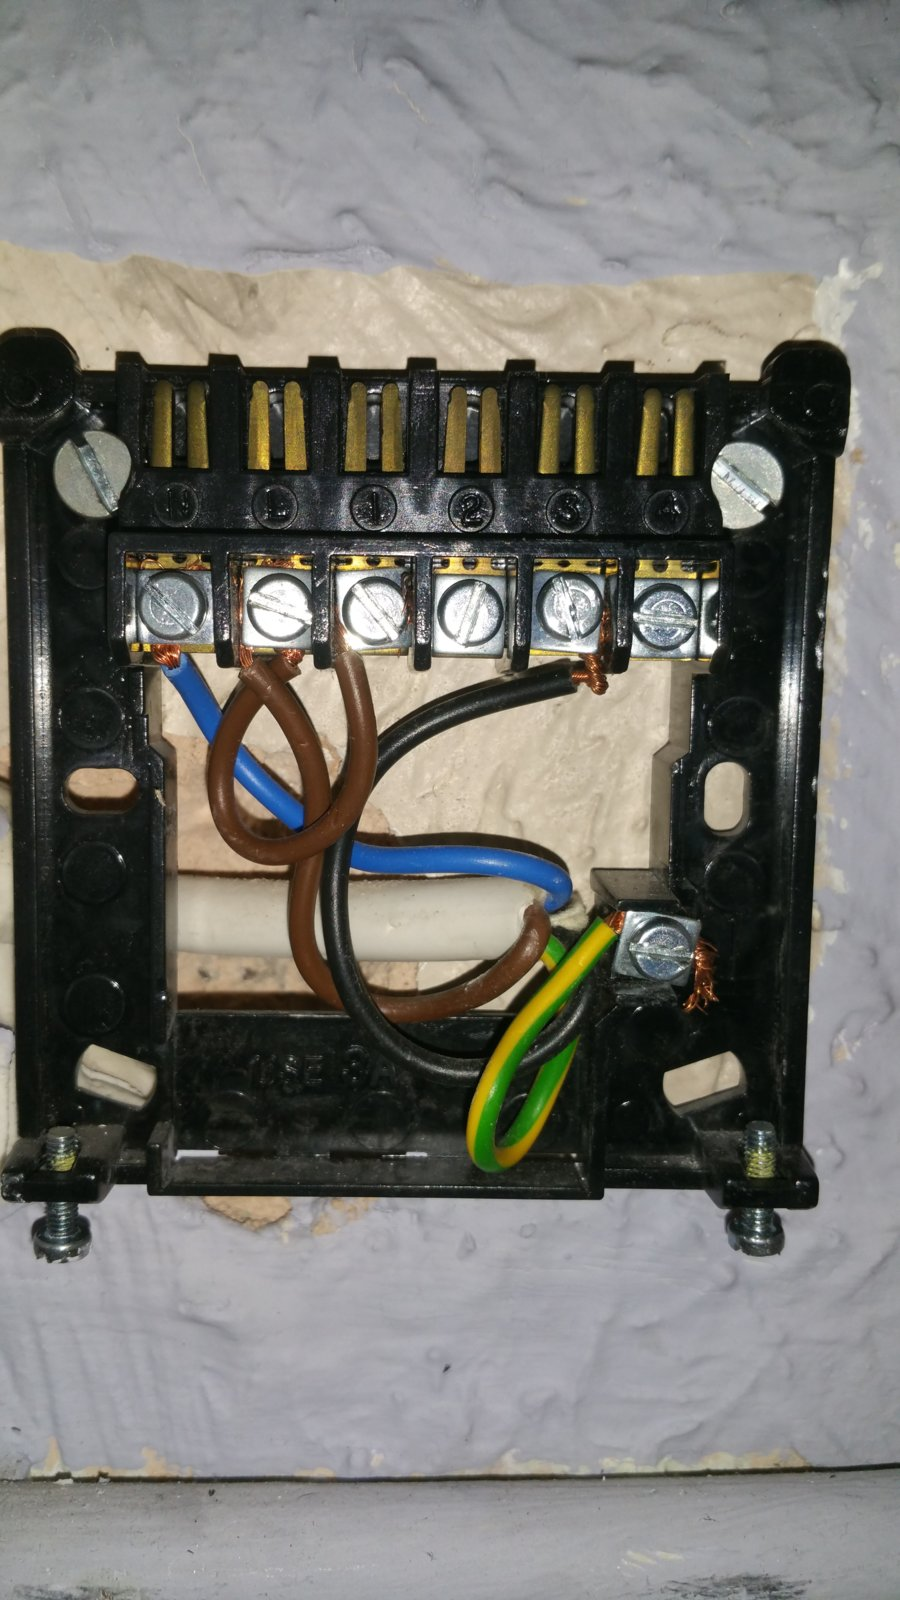 acl lifestyle wiring diagram acl lifestyle wiring diagram valid rh color castles com Wiring- Diagram Wire Money